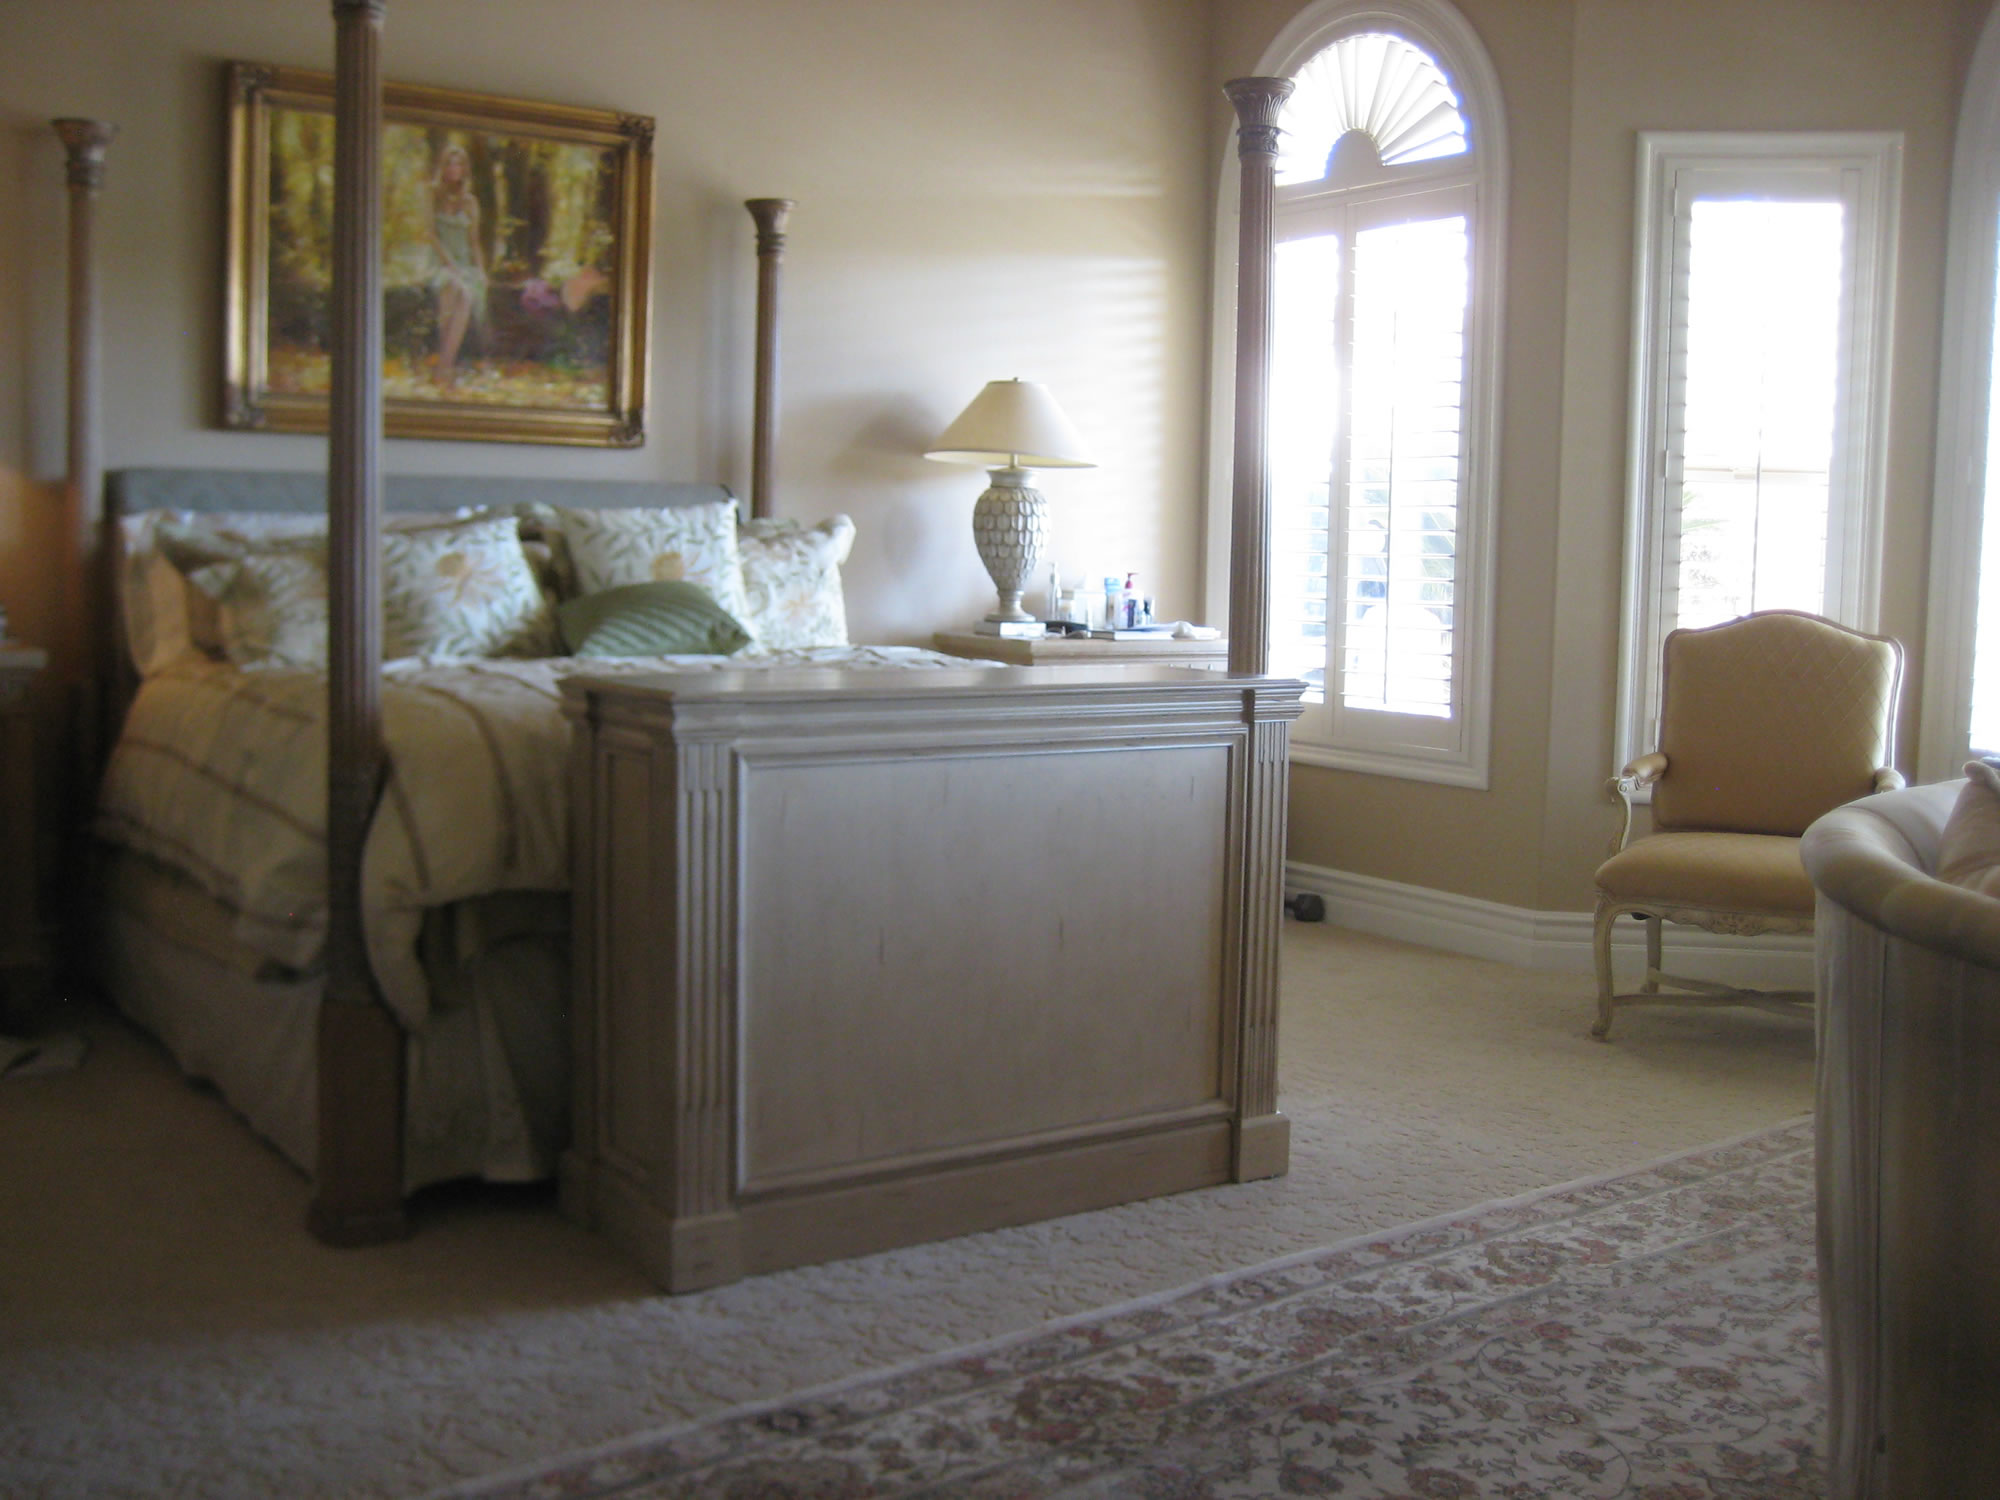 main ritz camden white tv lift cabinet at the foot of bed cabinet tronix. Black Bedroom Furniture Sets. Home Design Ideas